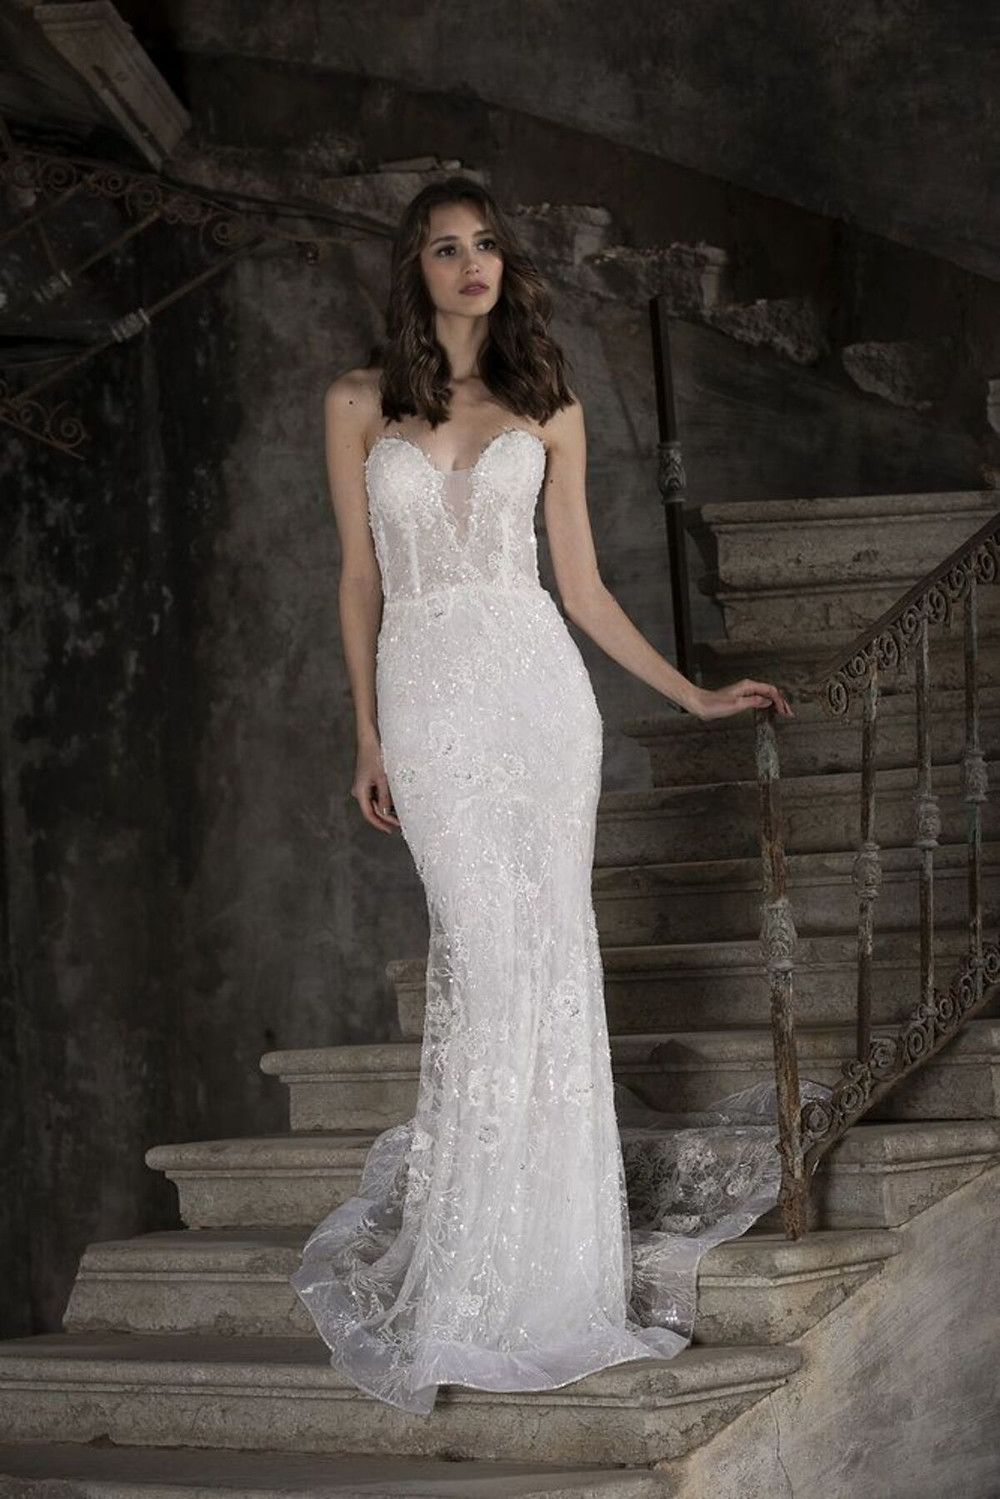 A mermaid wedding dress featuring lace embroidered with sequins and a corseted bust